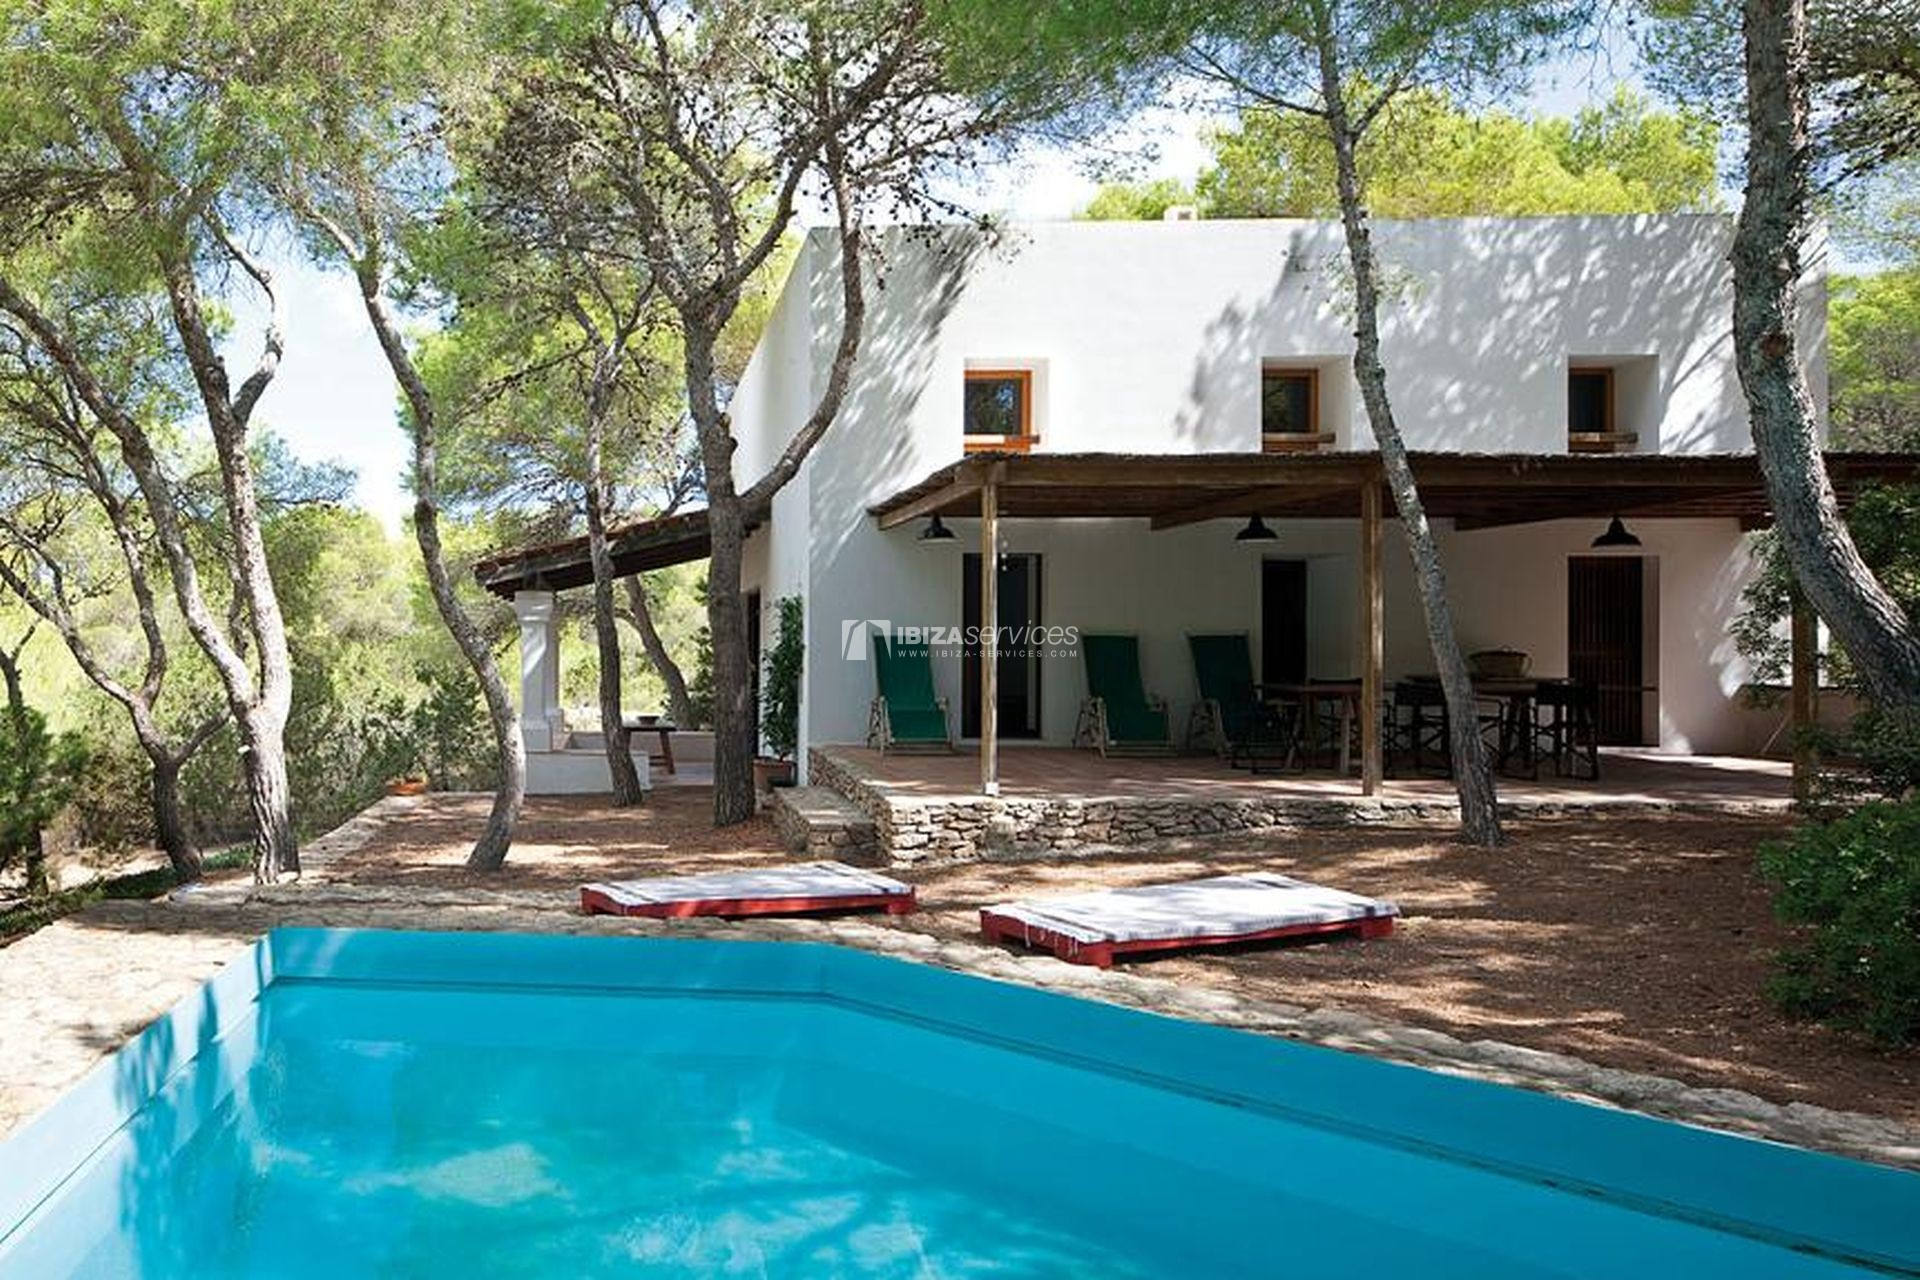 4 bedroom Villa for rent in Formentera perspectiva 2